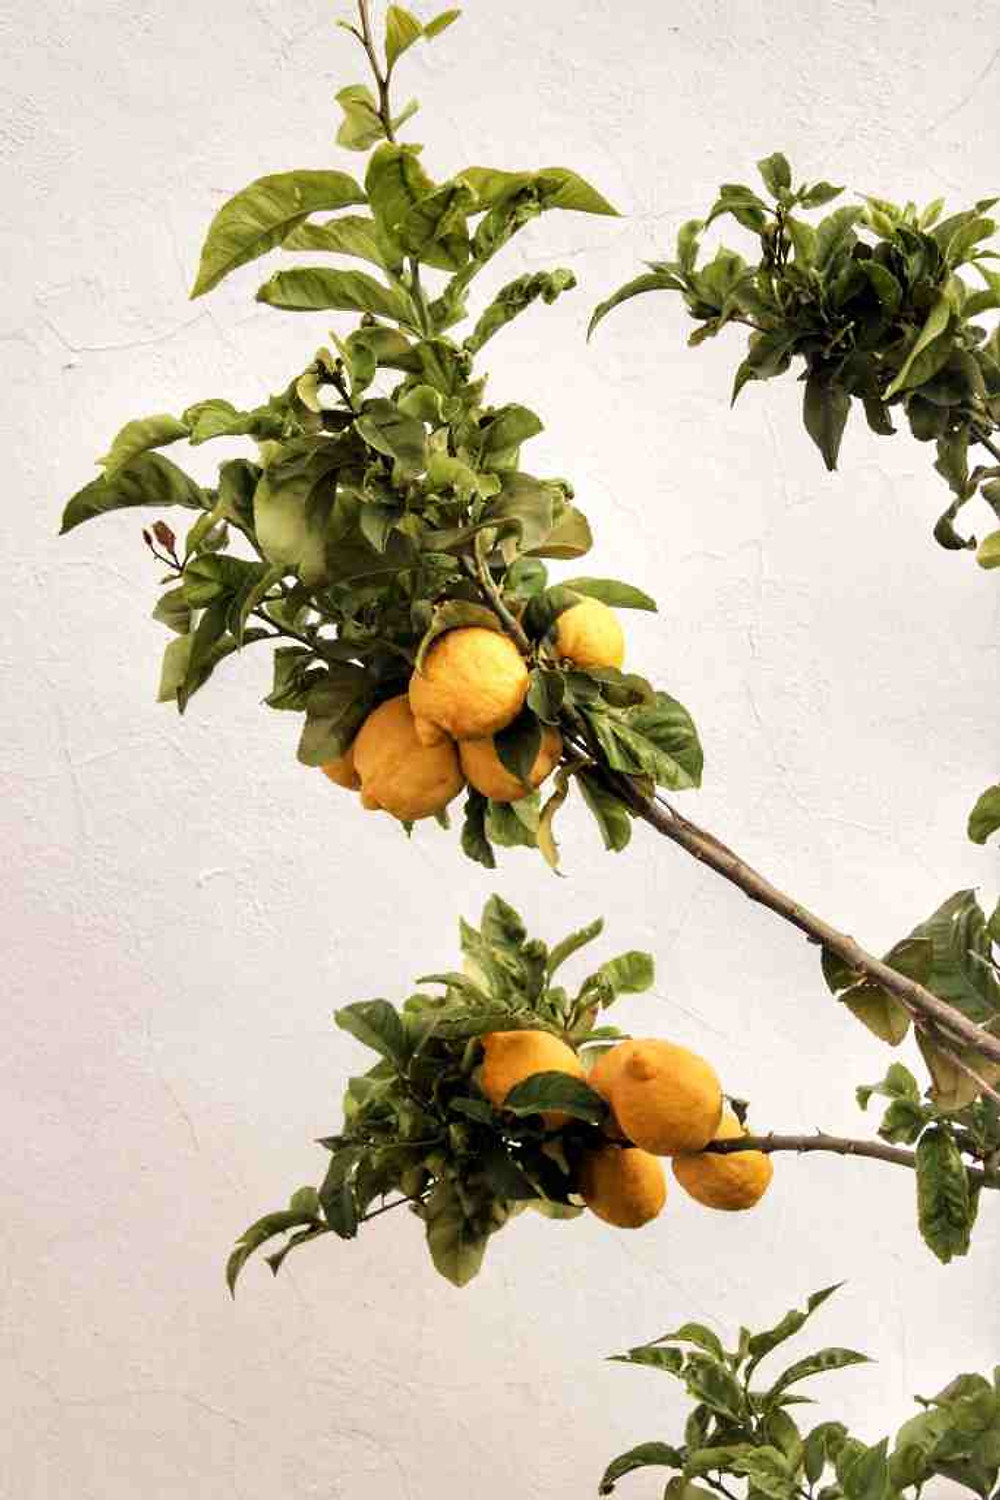 tree branch with large lemons in sicily